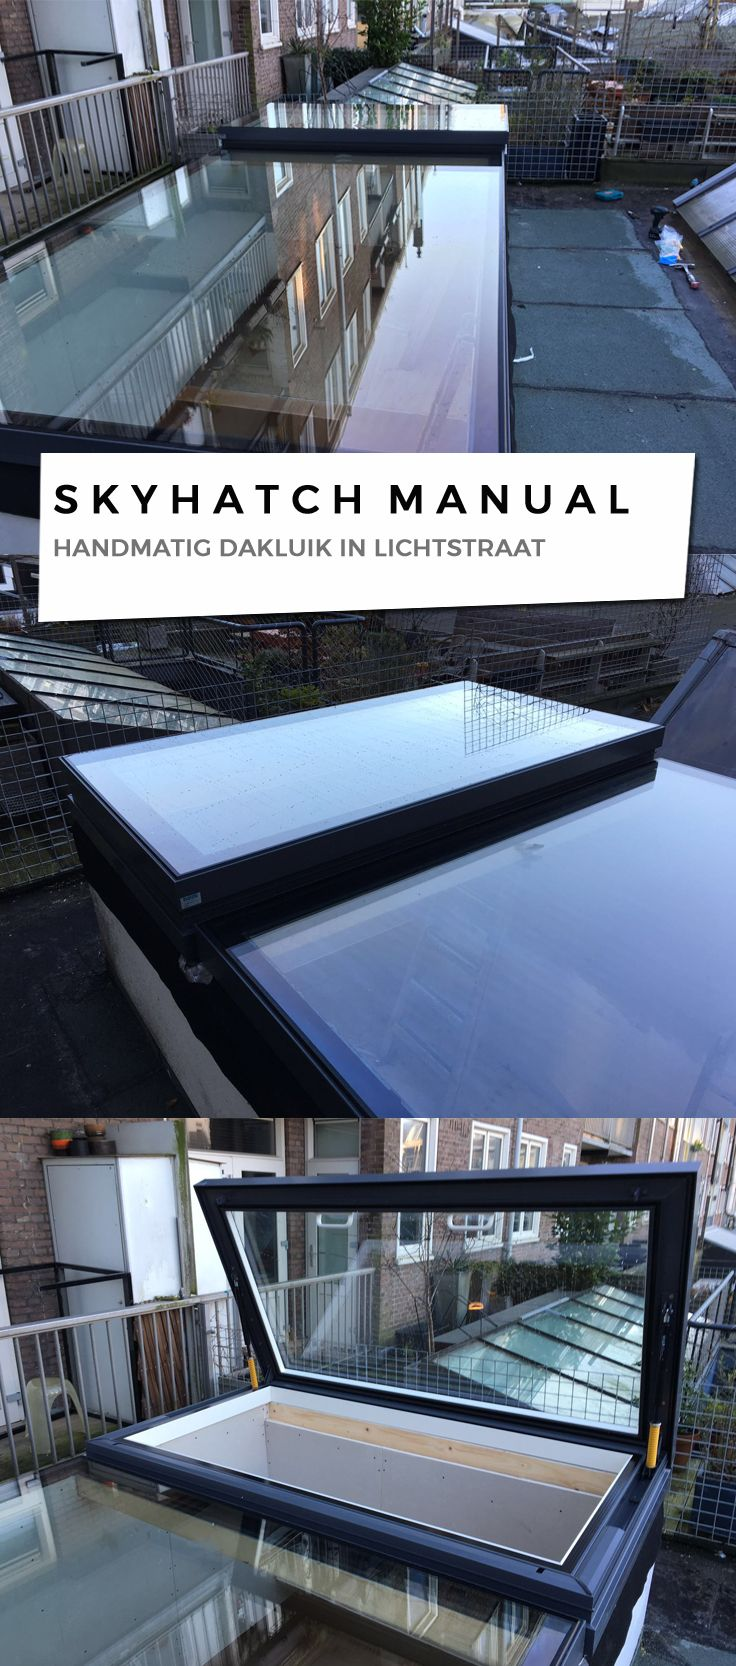 14 best Space: SkyHatch images on Pinterest | Manual, Textbook and ...